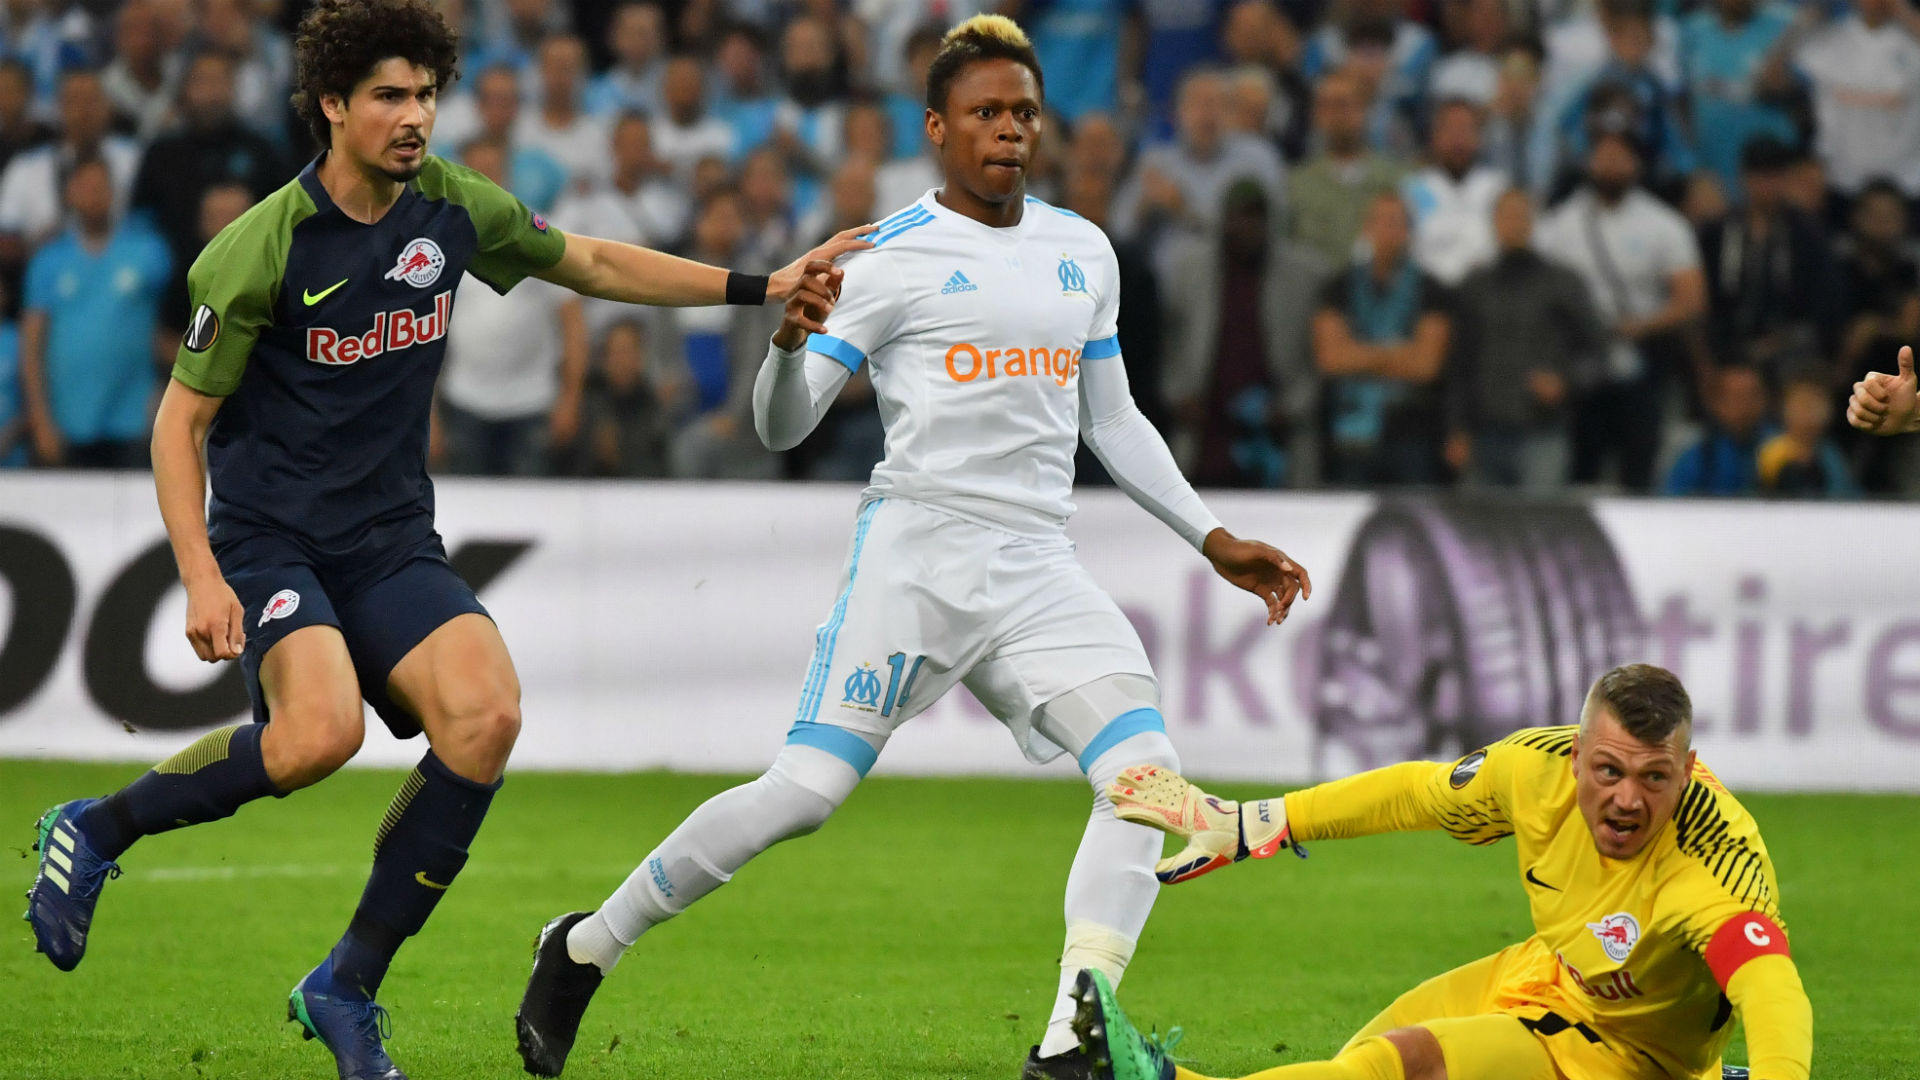 Rolando the hero as Marseille knock out Salzburg